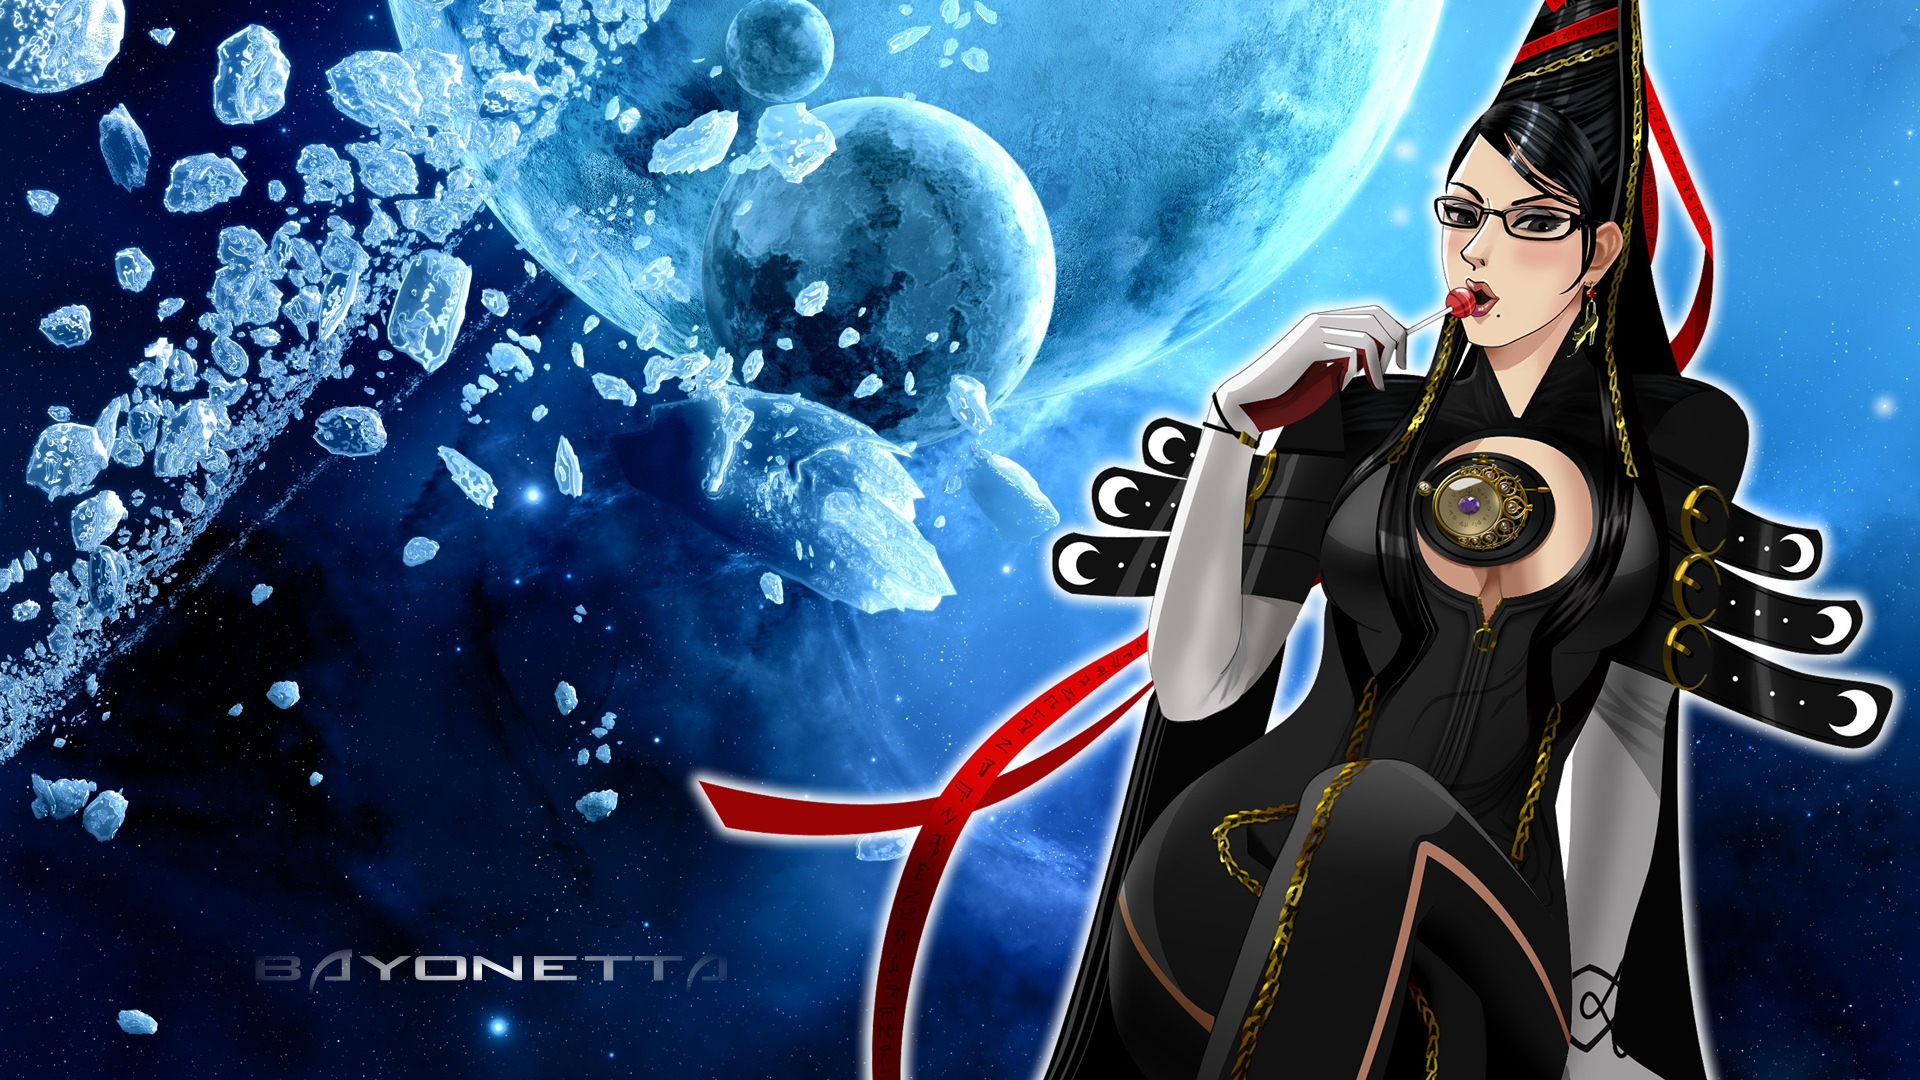 Bayonetta Wallpaper 01 1900 x 1080 Bayonetta Wallpaper 01   1900x1080 1920x1080